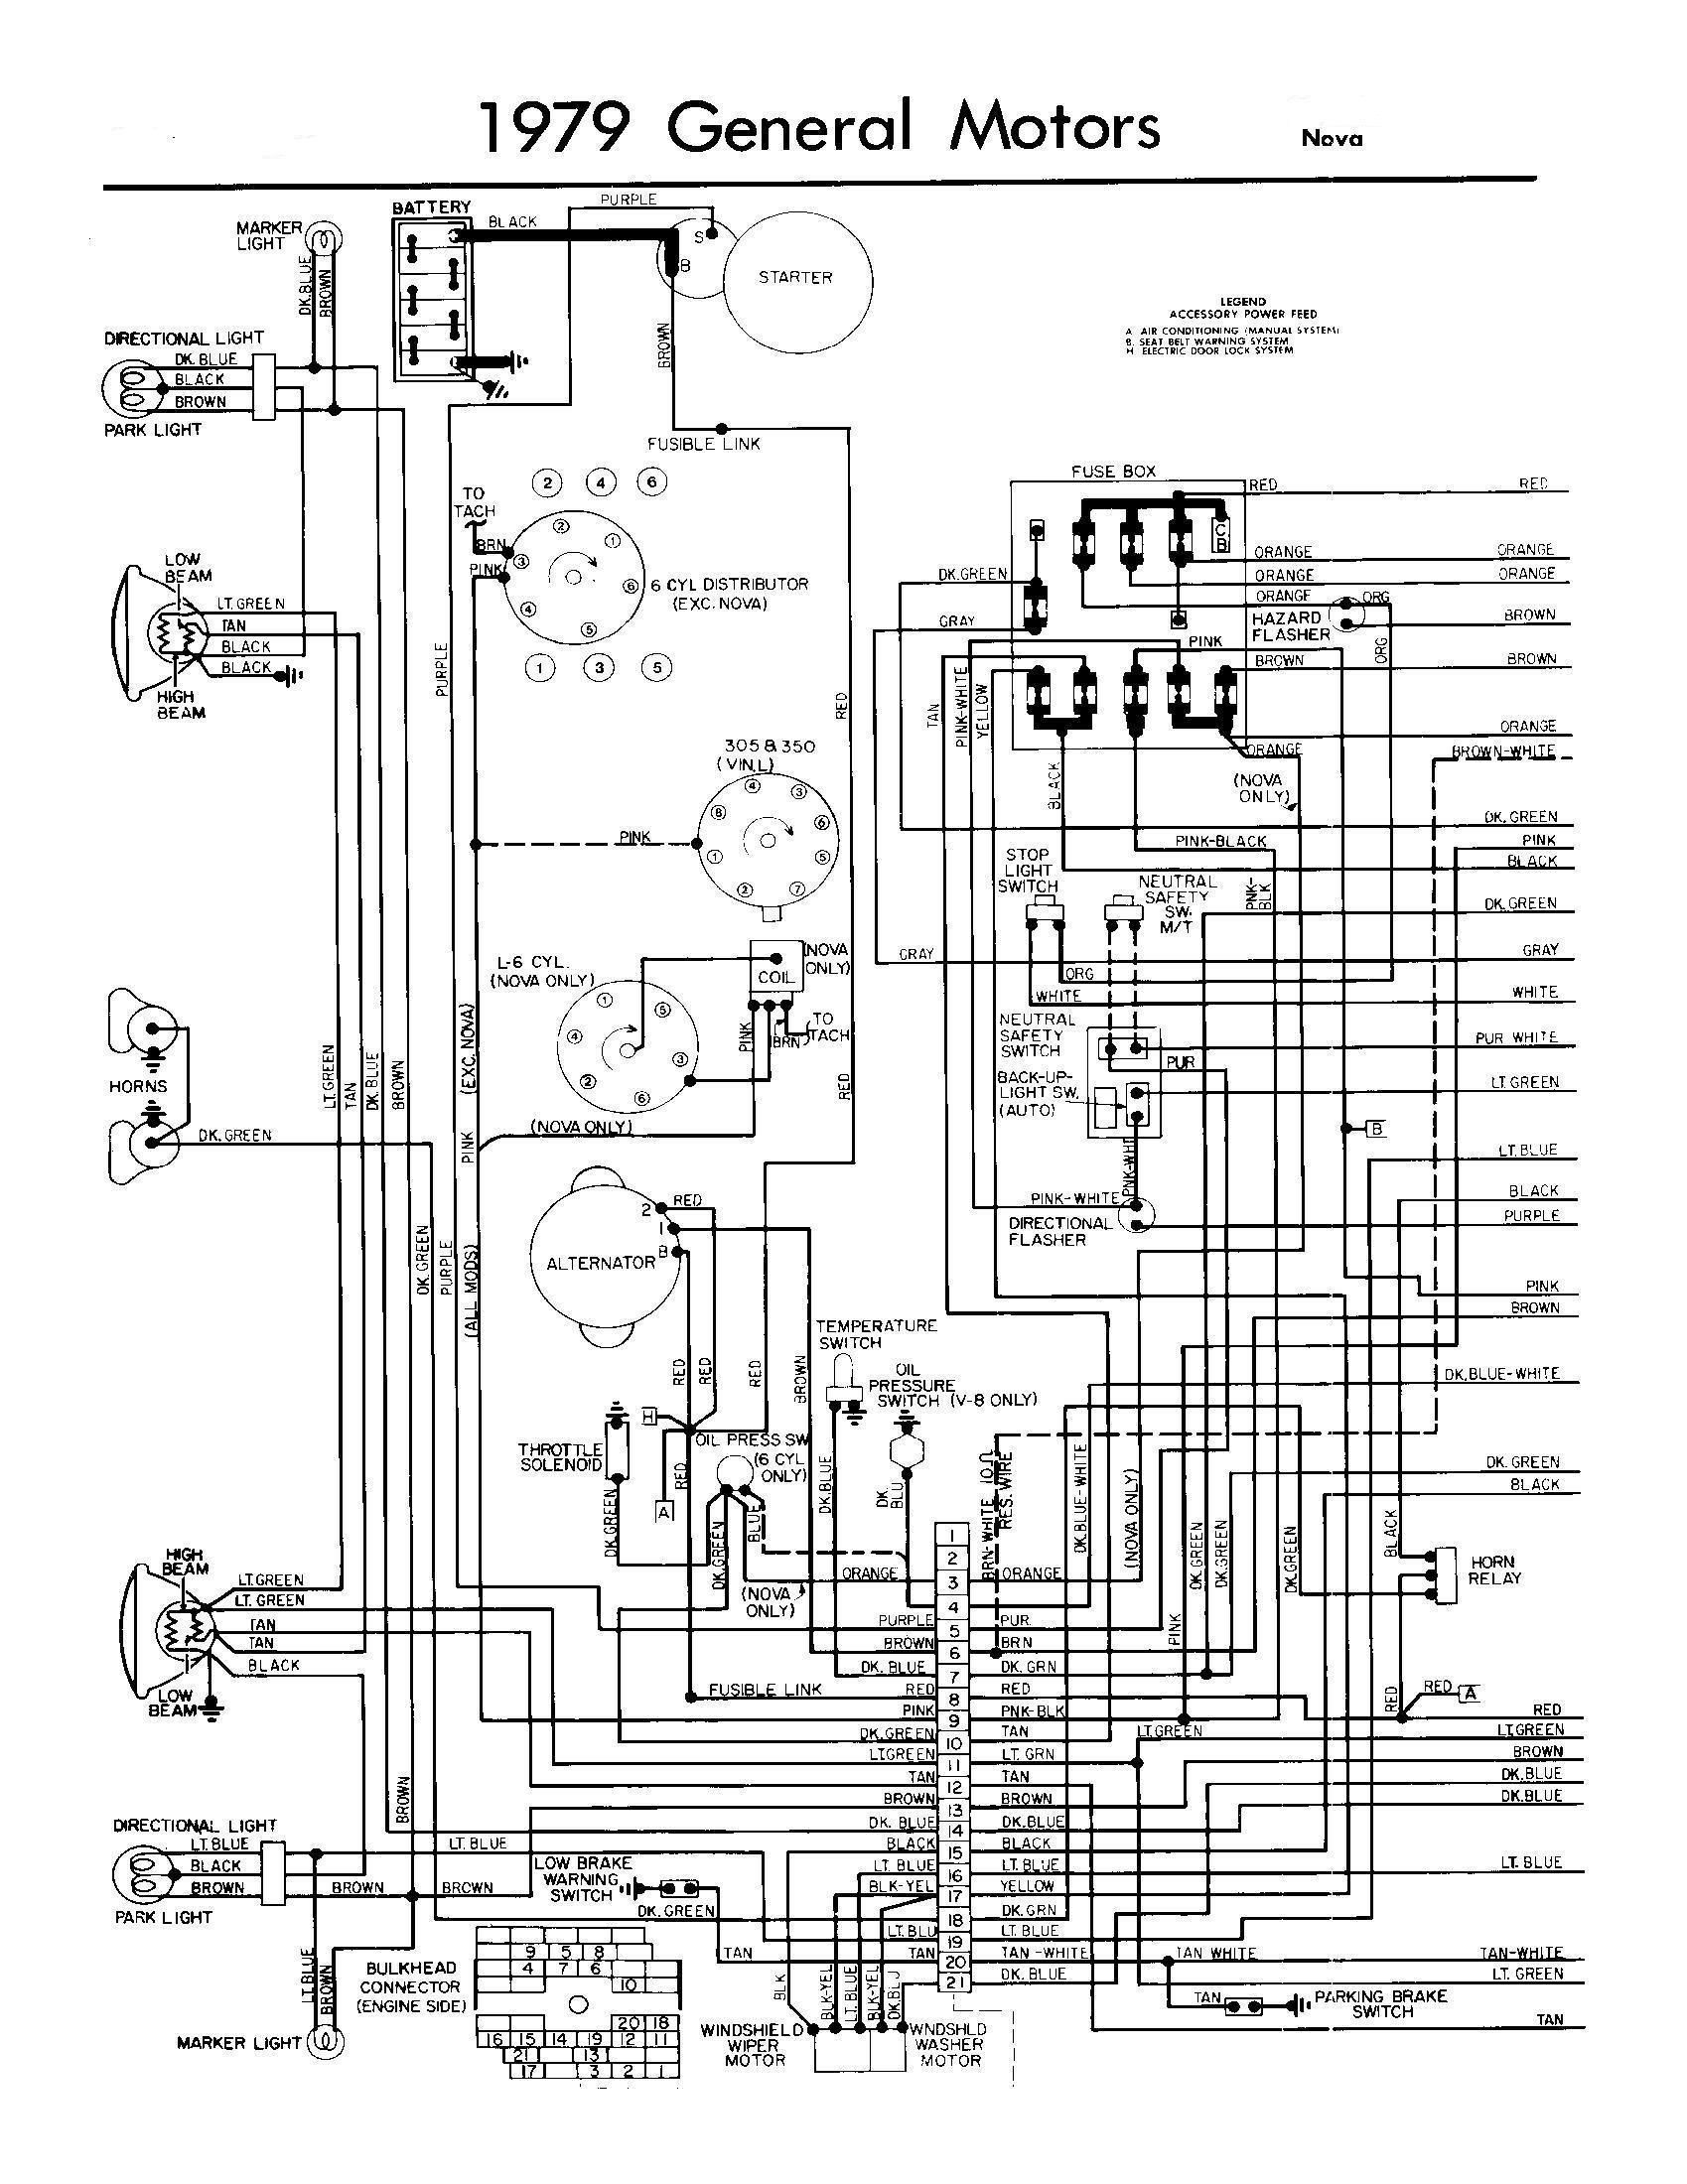 1984 Chevy Truck Fuse Box Diagram Truck Wiring Diagram Moreover 1981 Chevy Truck Fuse Box Wiring